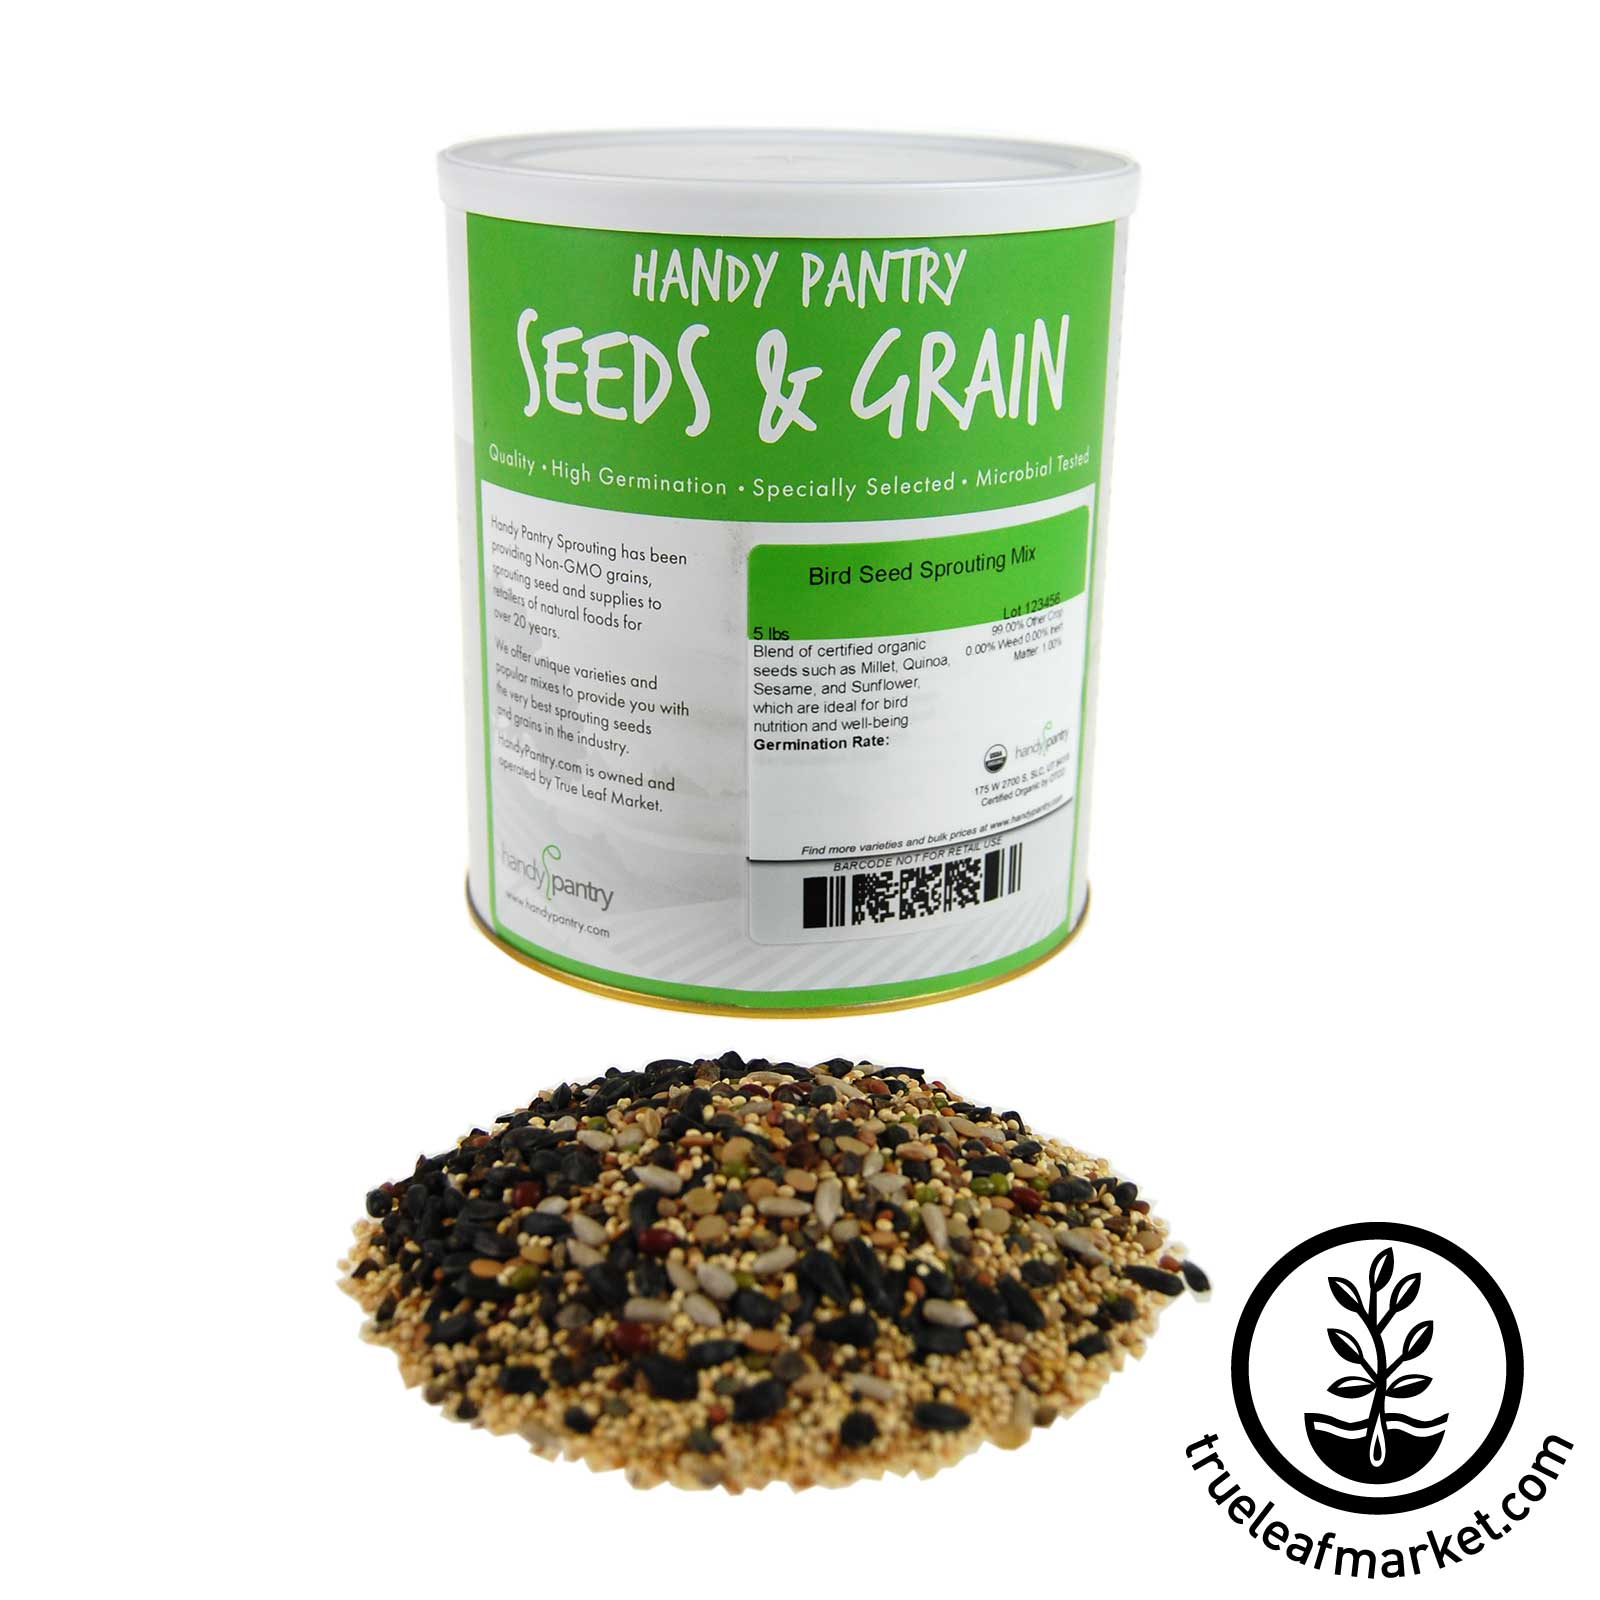 4.5 LB Can - Organic Bird Seed Mix